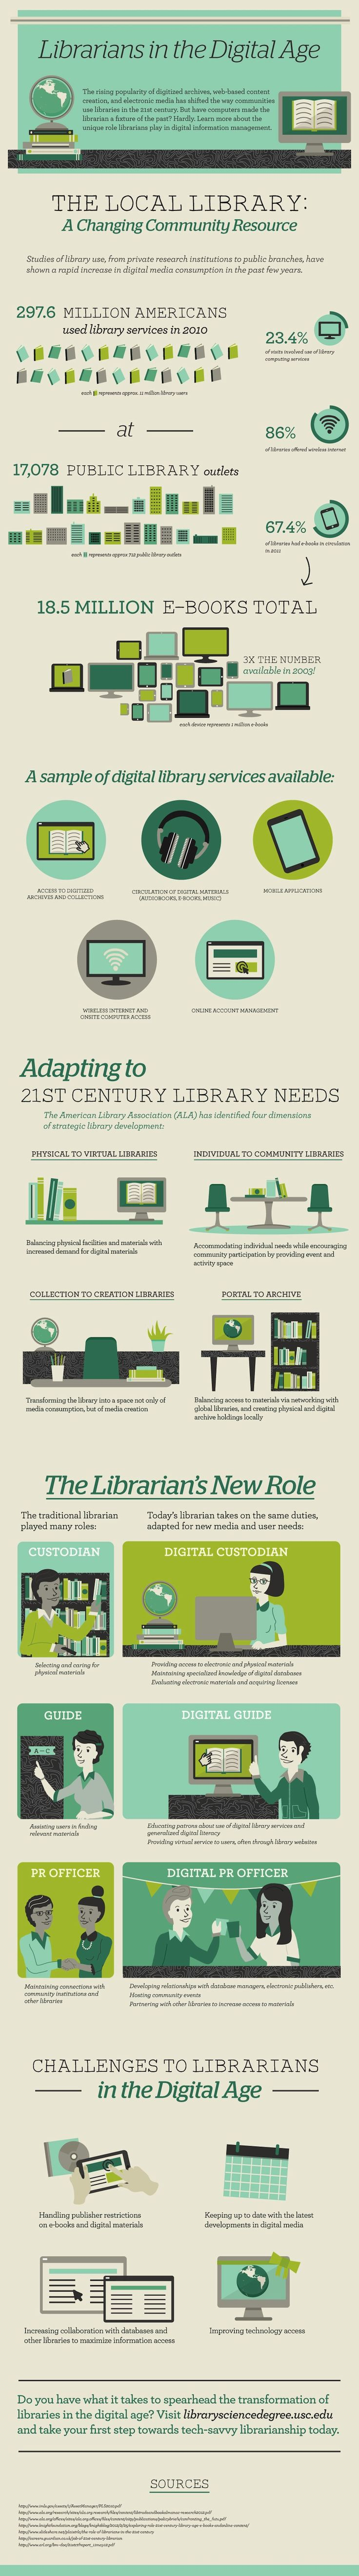 In digital age, librarians are needed more than ever [infographic]